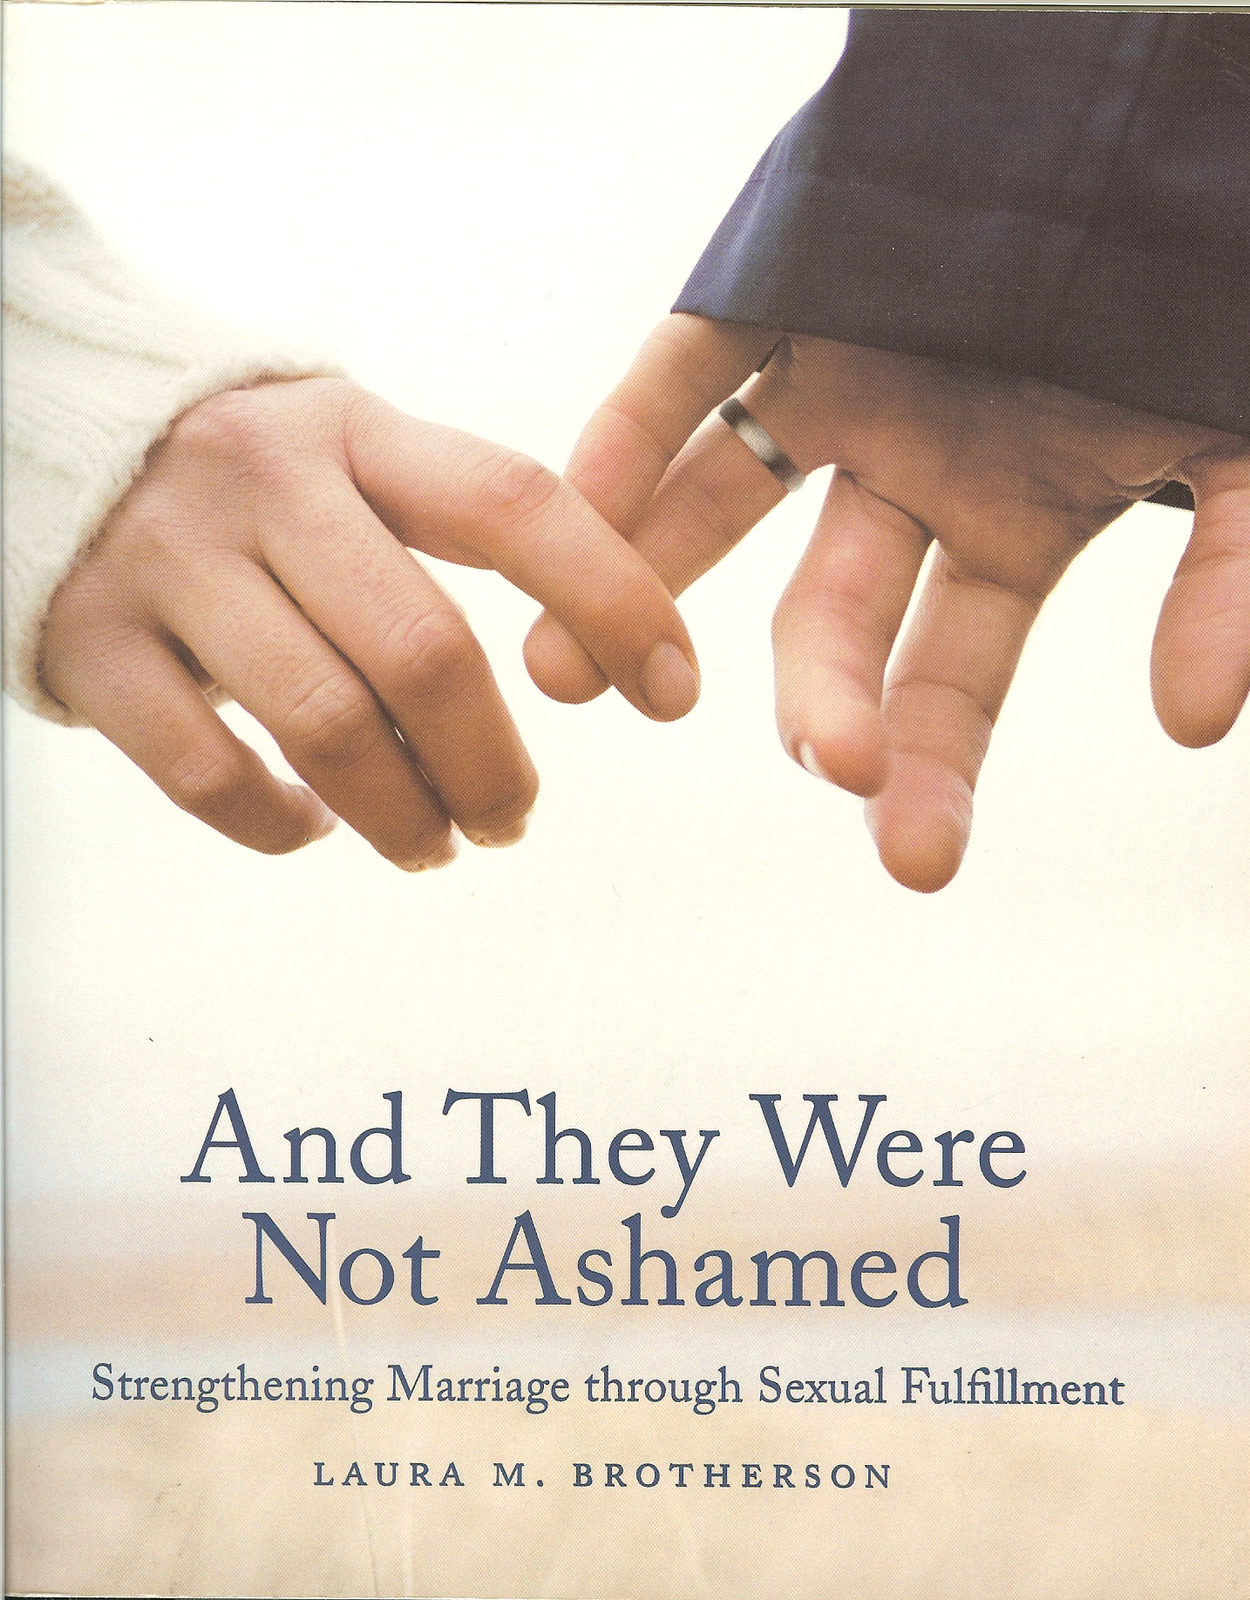 And they were not ashamed strengthening marriage through sexual fulfillment